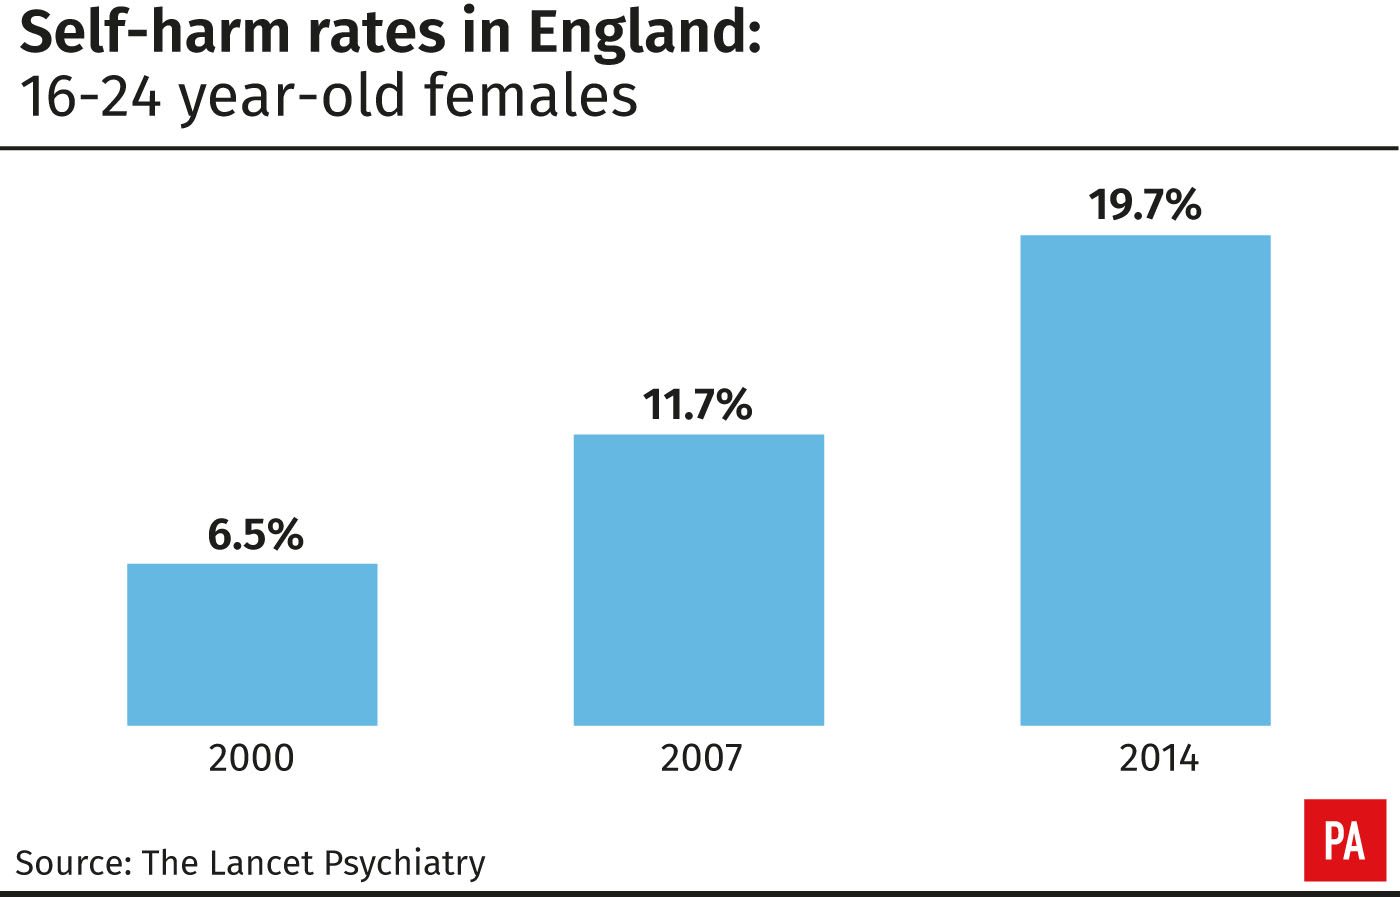 Self-harm rates in England: 16-24 year-olds